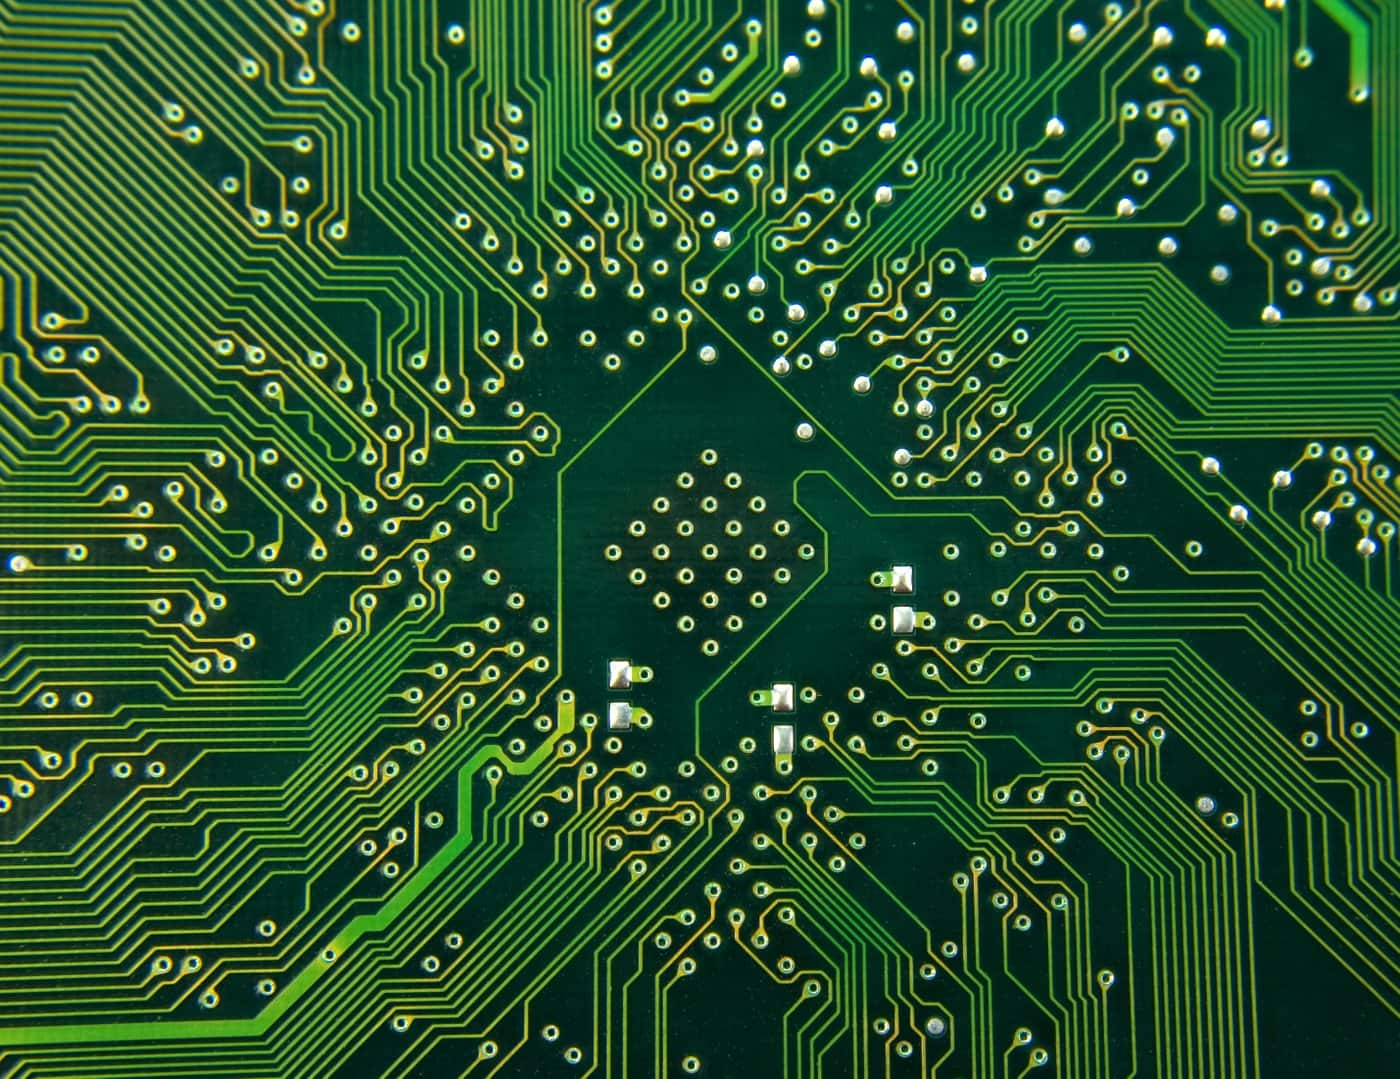 Printed computer circuit boards green